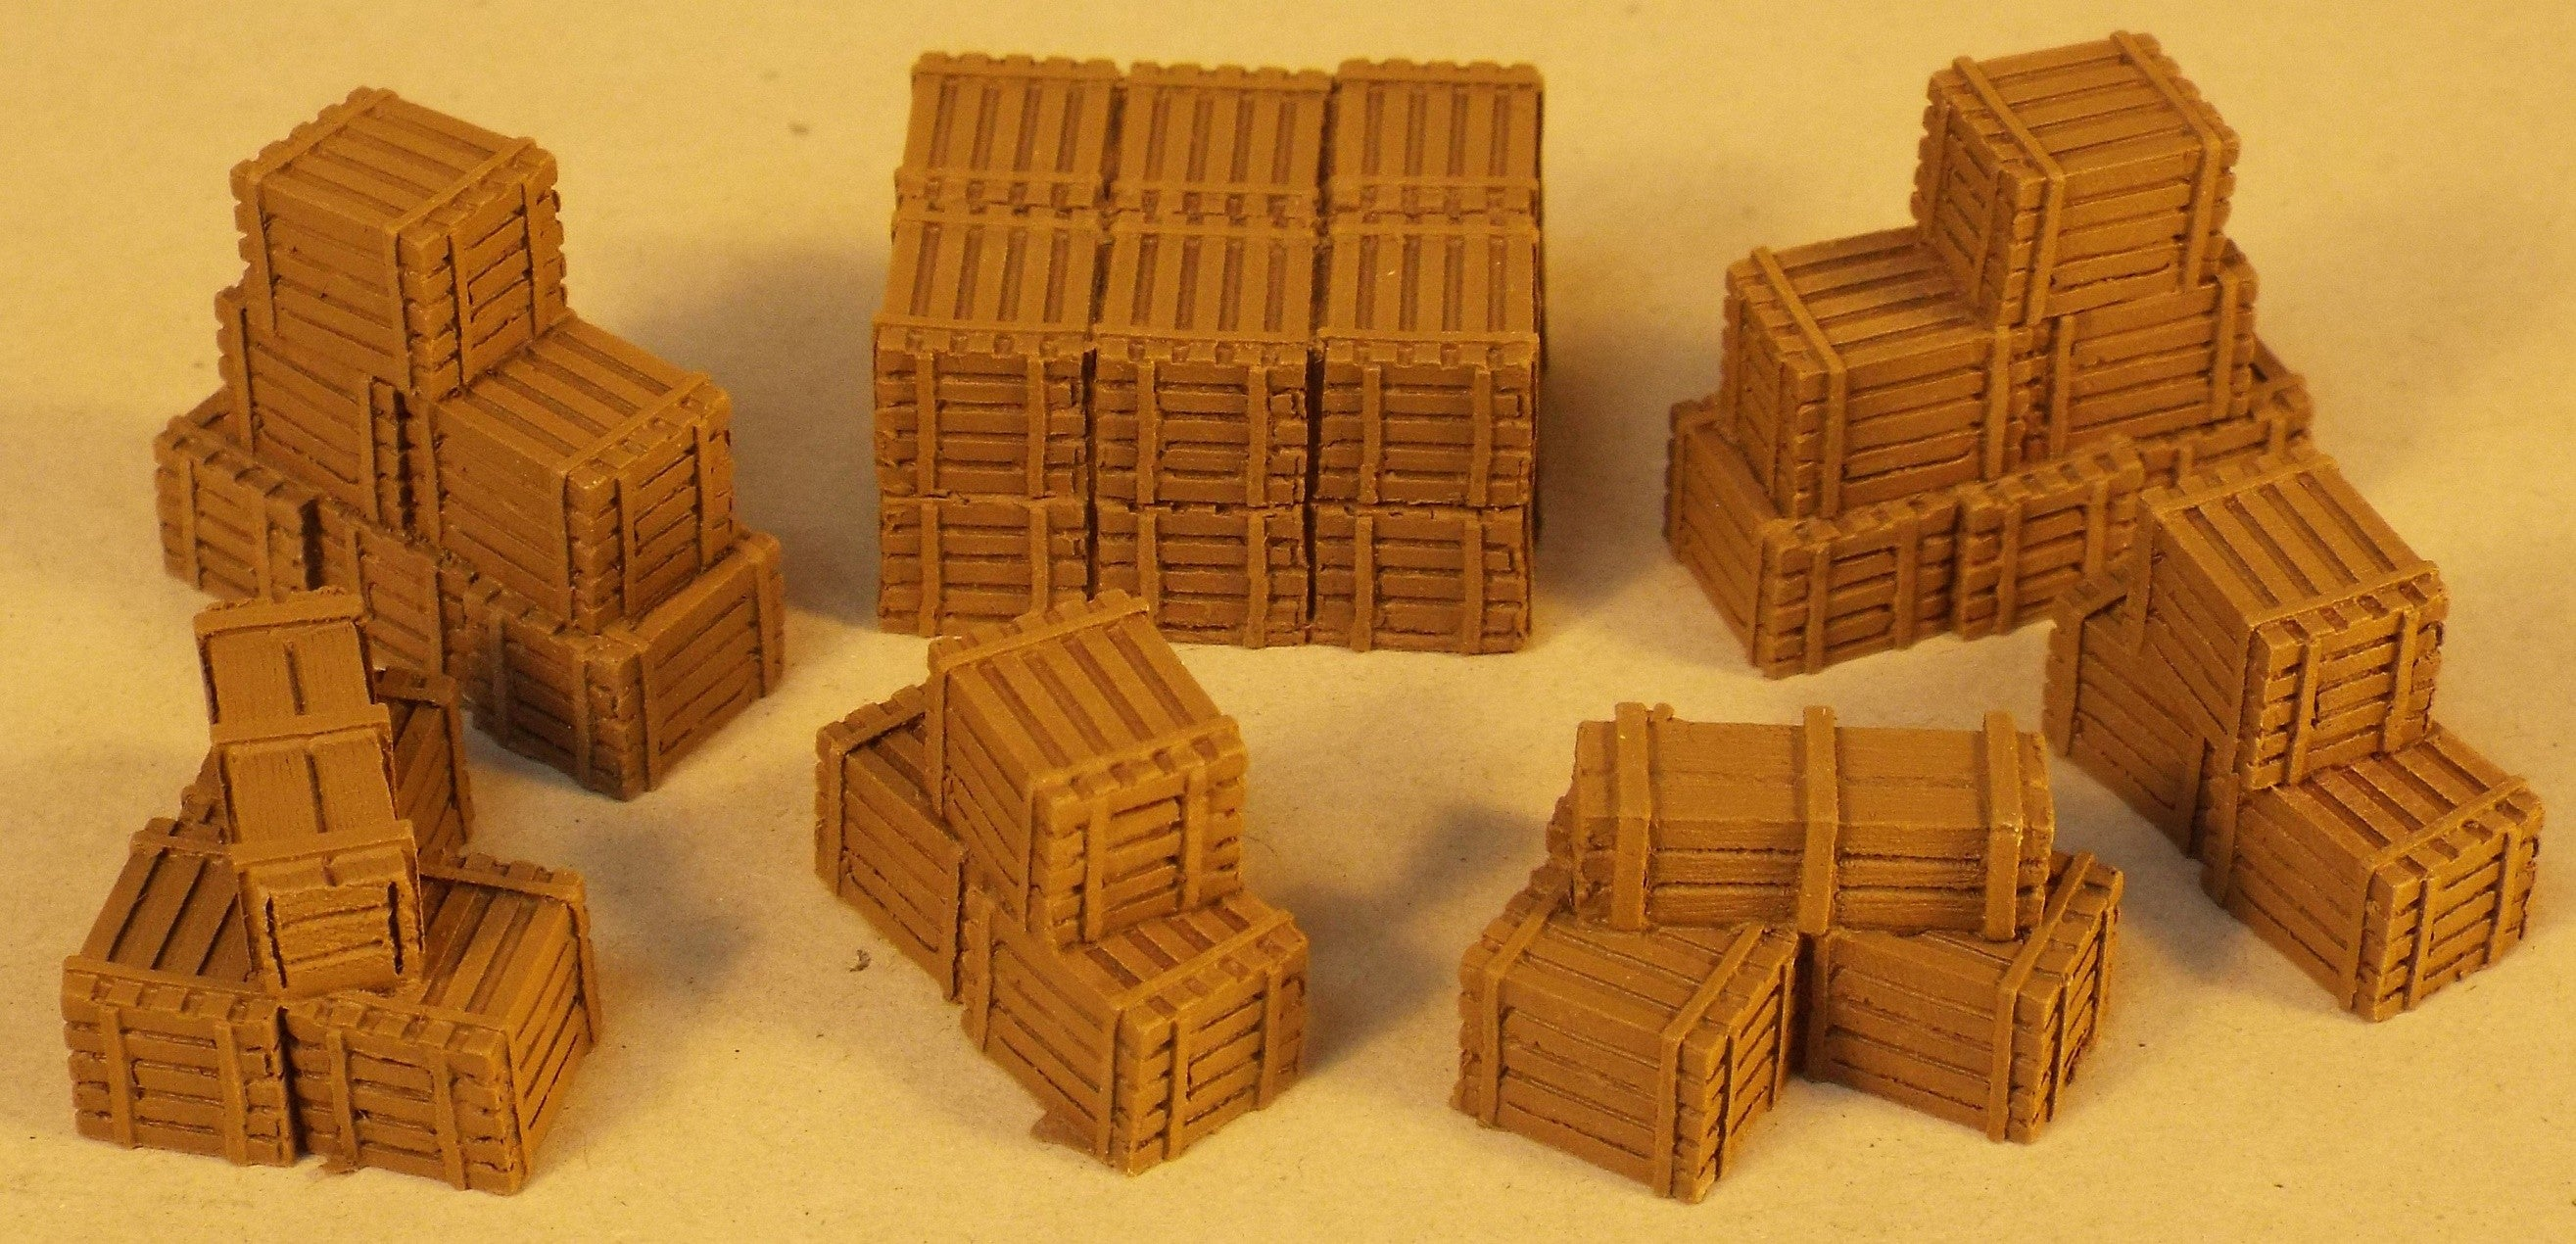 4A/013 Stacks of Wooden Crates (resin x7)